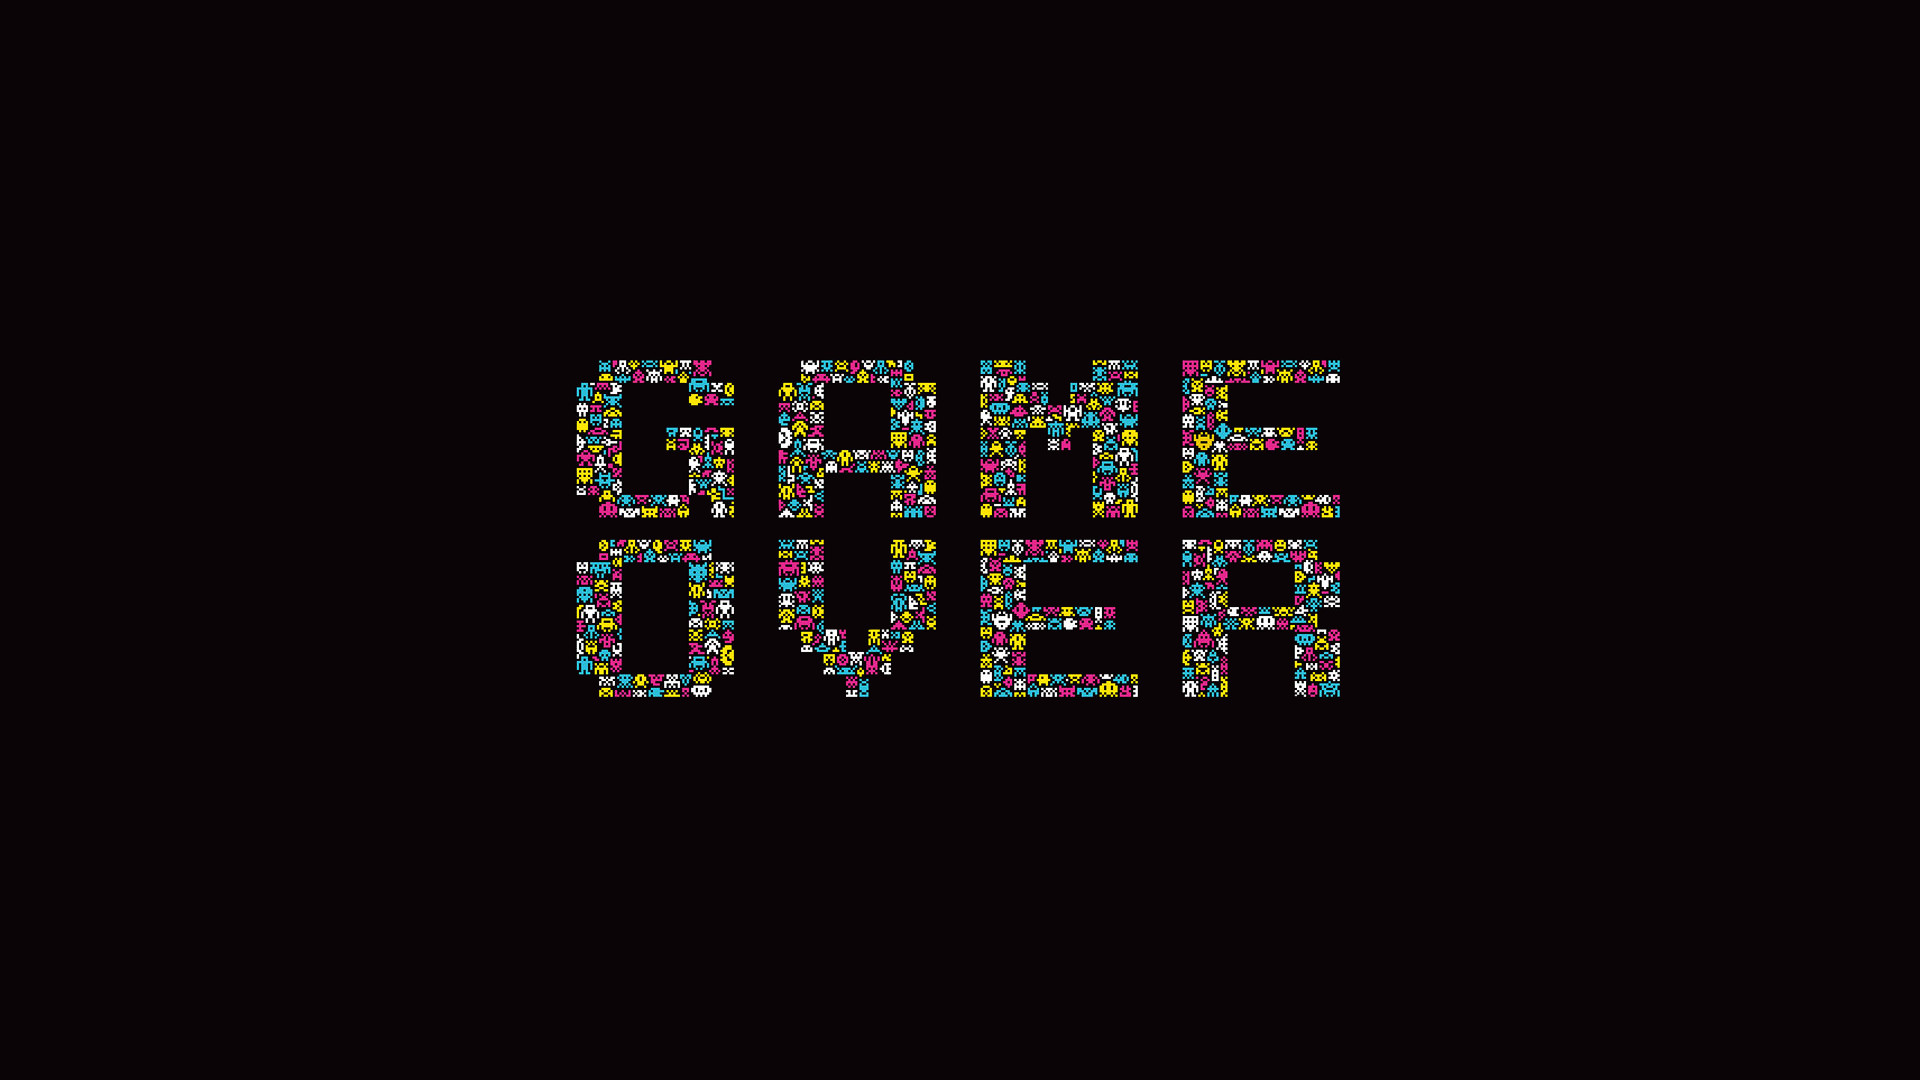 Retro Games Simple Background Space Invaders Typography Video Games .